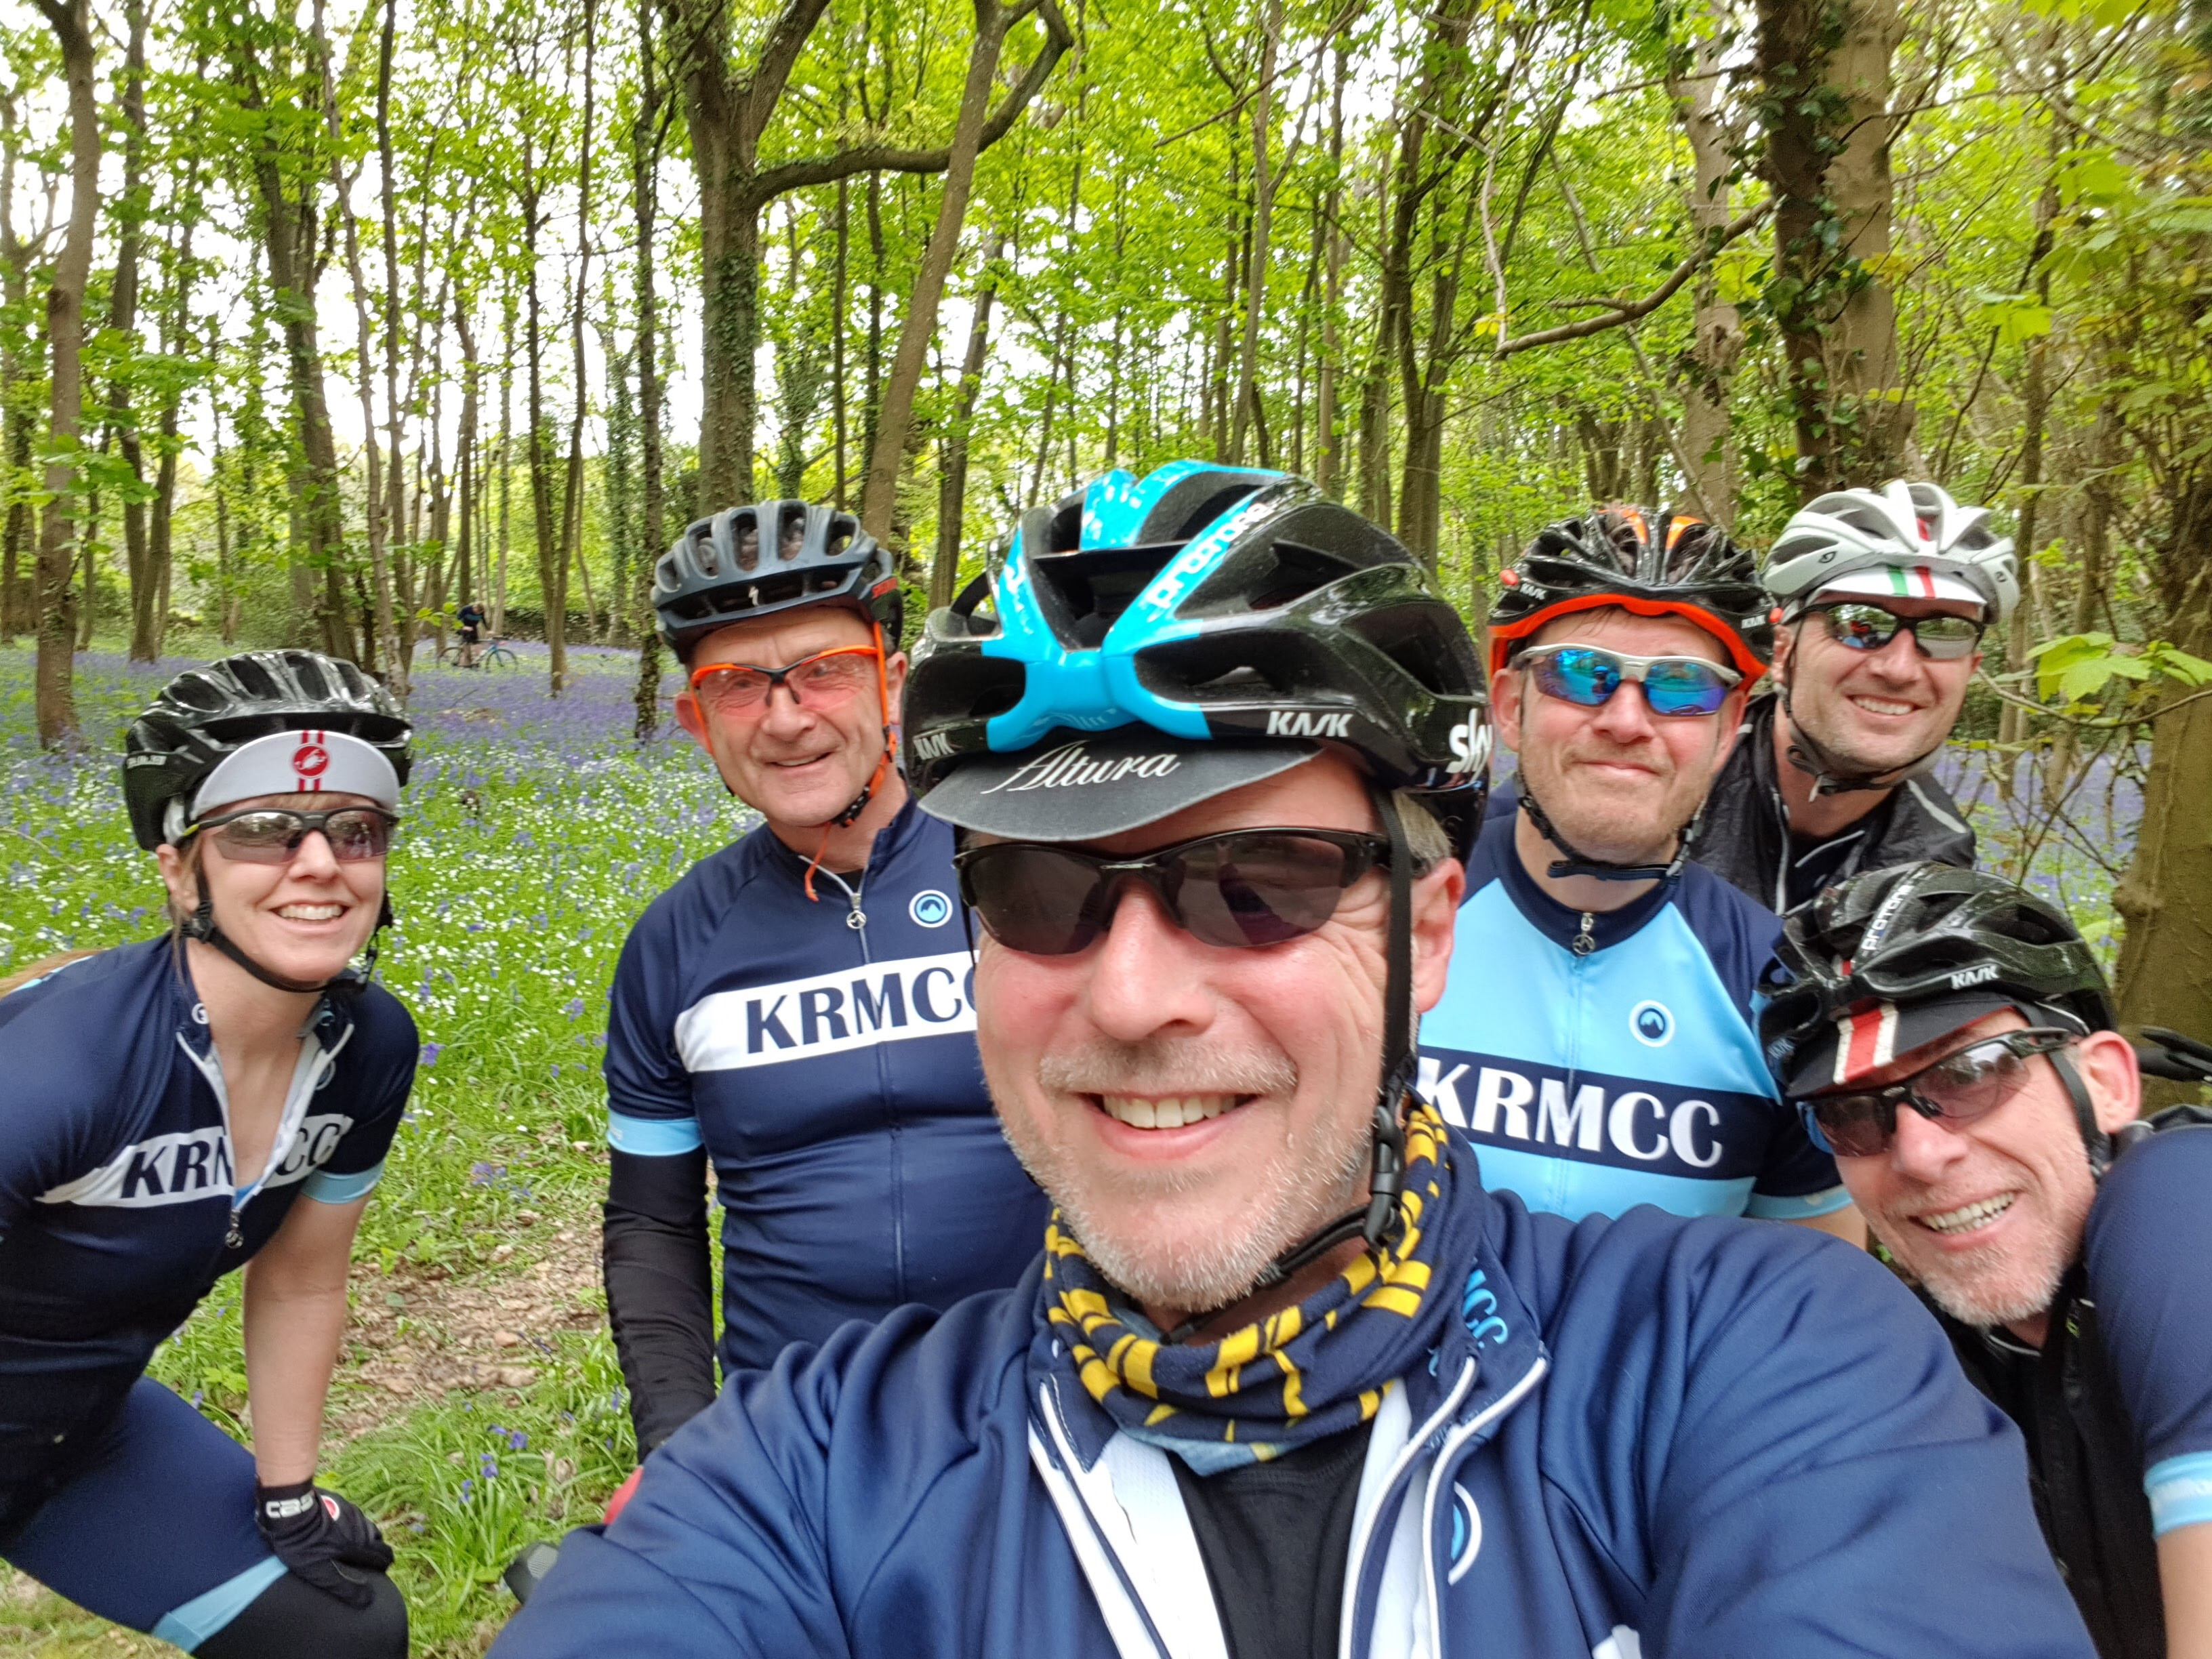 KRMCC riders on Ranmore Common